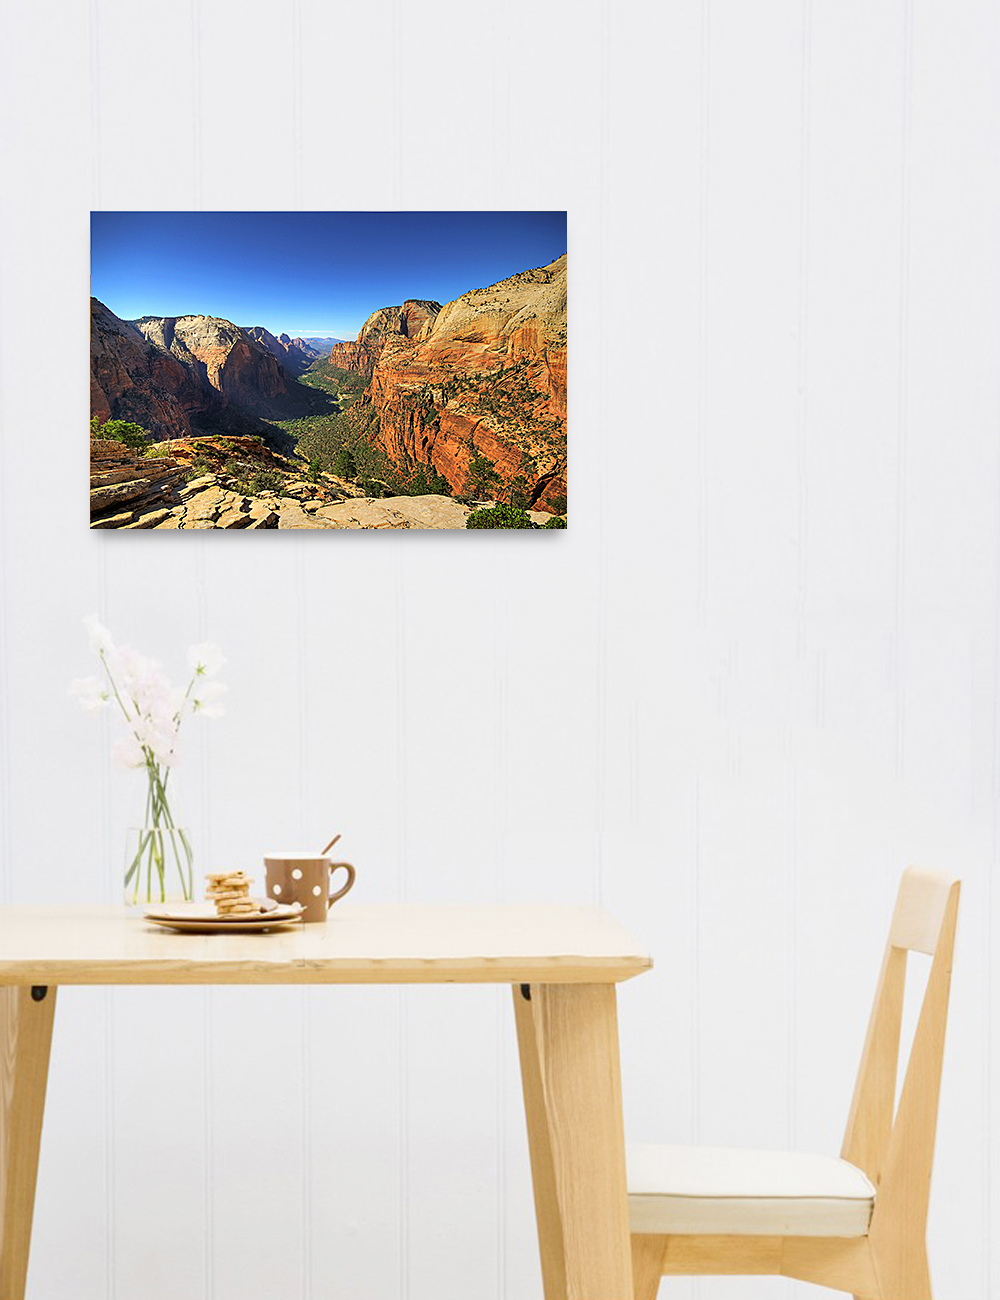 Details About Angel's Landing At Zion National Park, Utah. Giclee Canvas Prints For Wall Decor With Landing Art Wall Decor (Gallery 24 of 30)